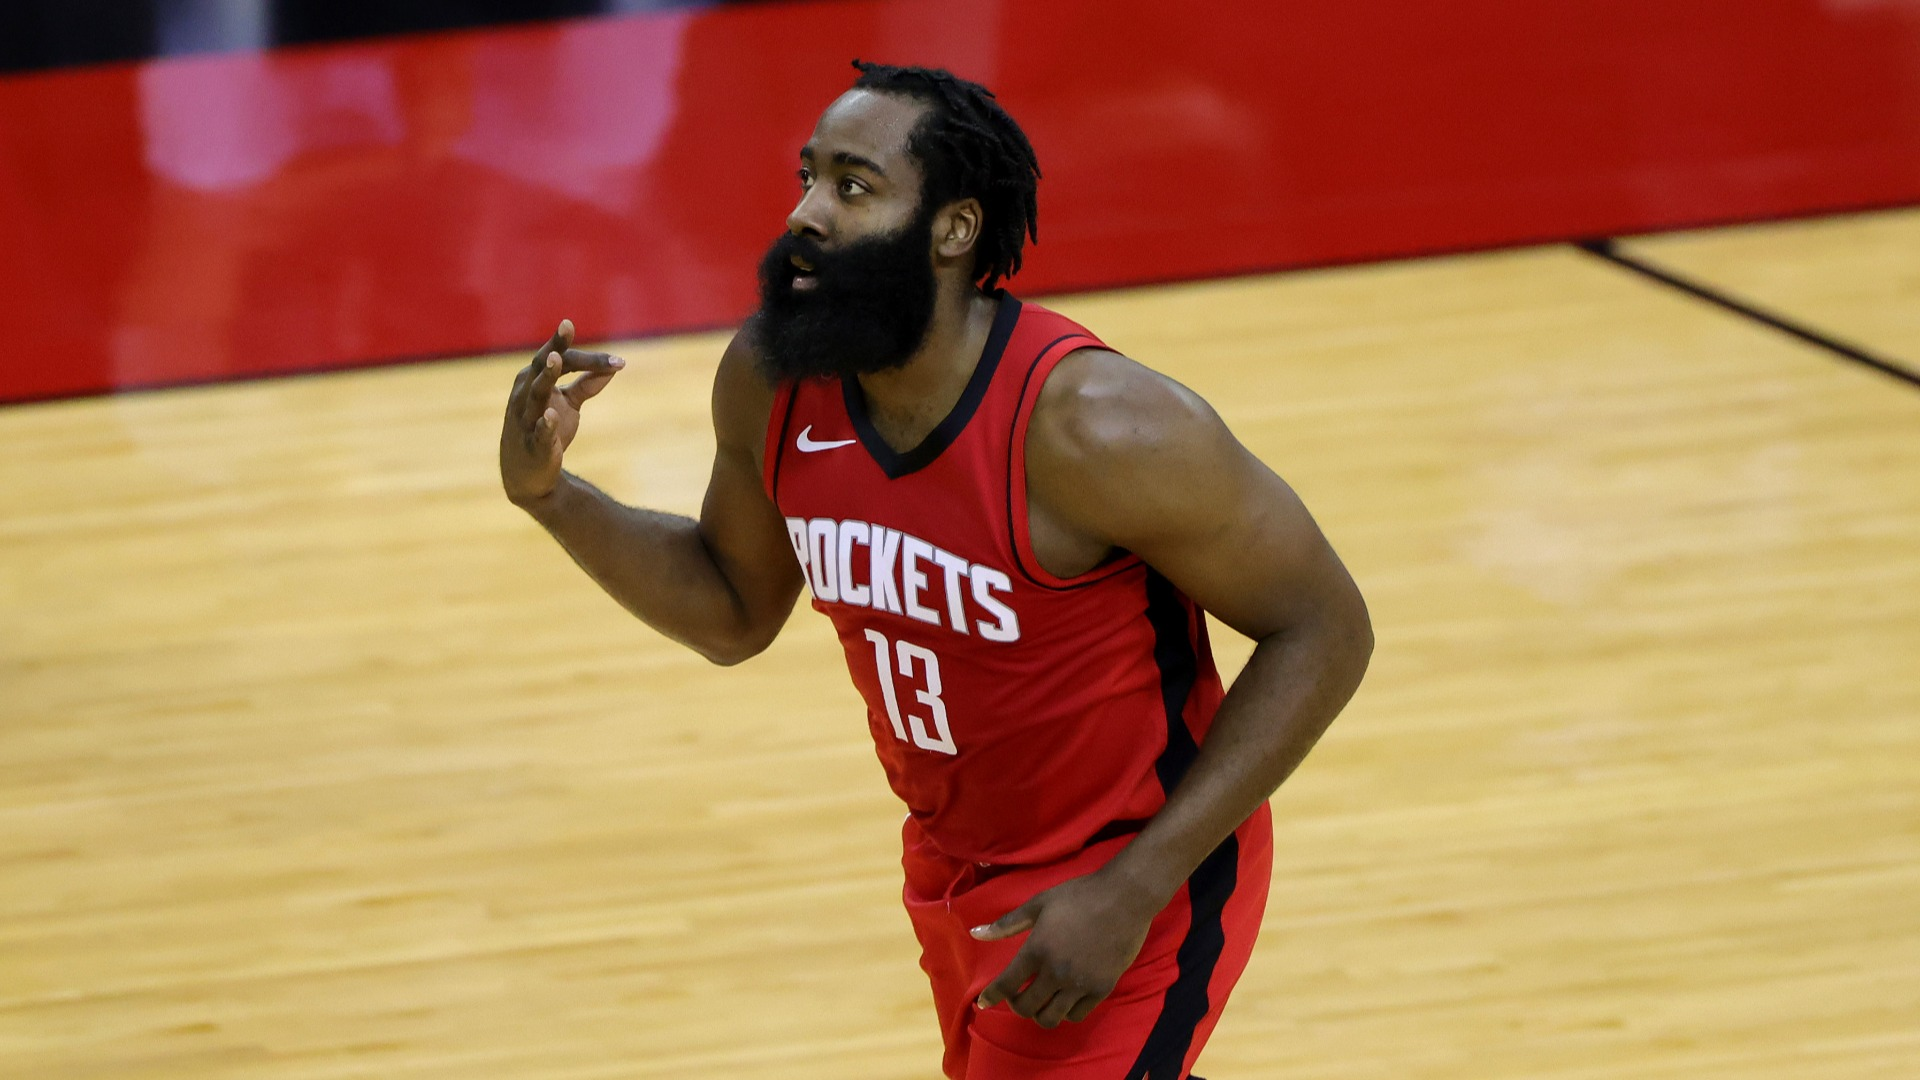 Harden hopes he will feel the love on return to face Rockets